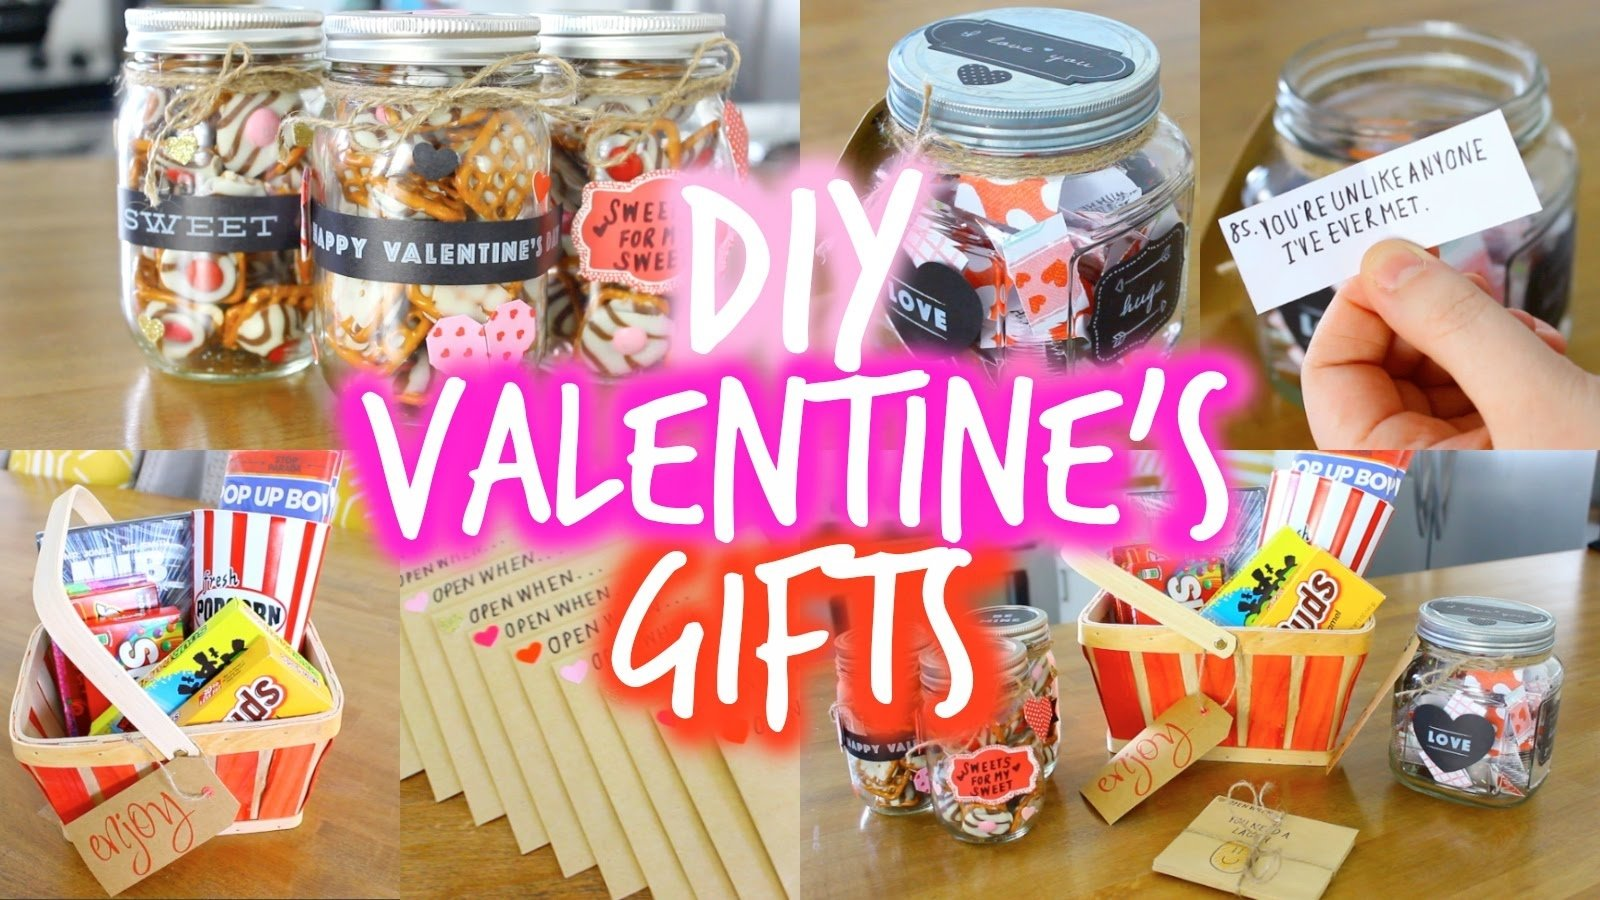 10 Pretty Valentines Day Ideas For Guys easy diy valentines day gift ideas for your boyfriend youtube 4 2020